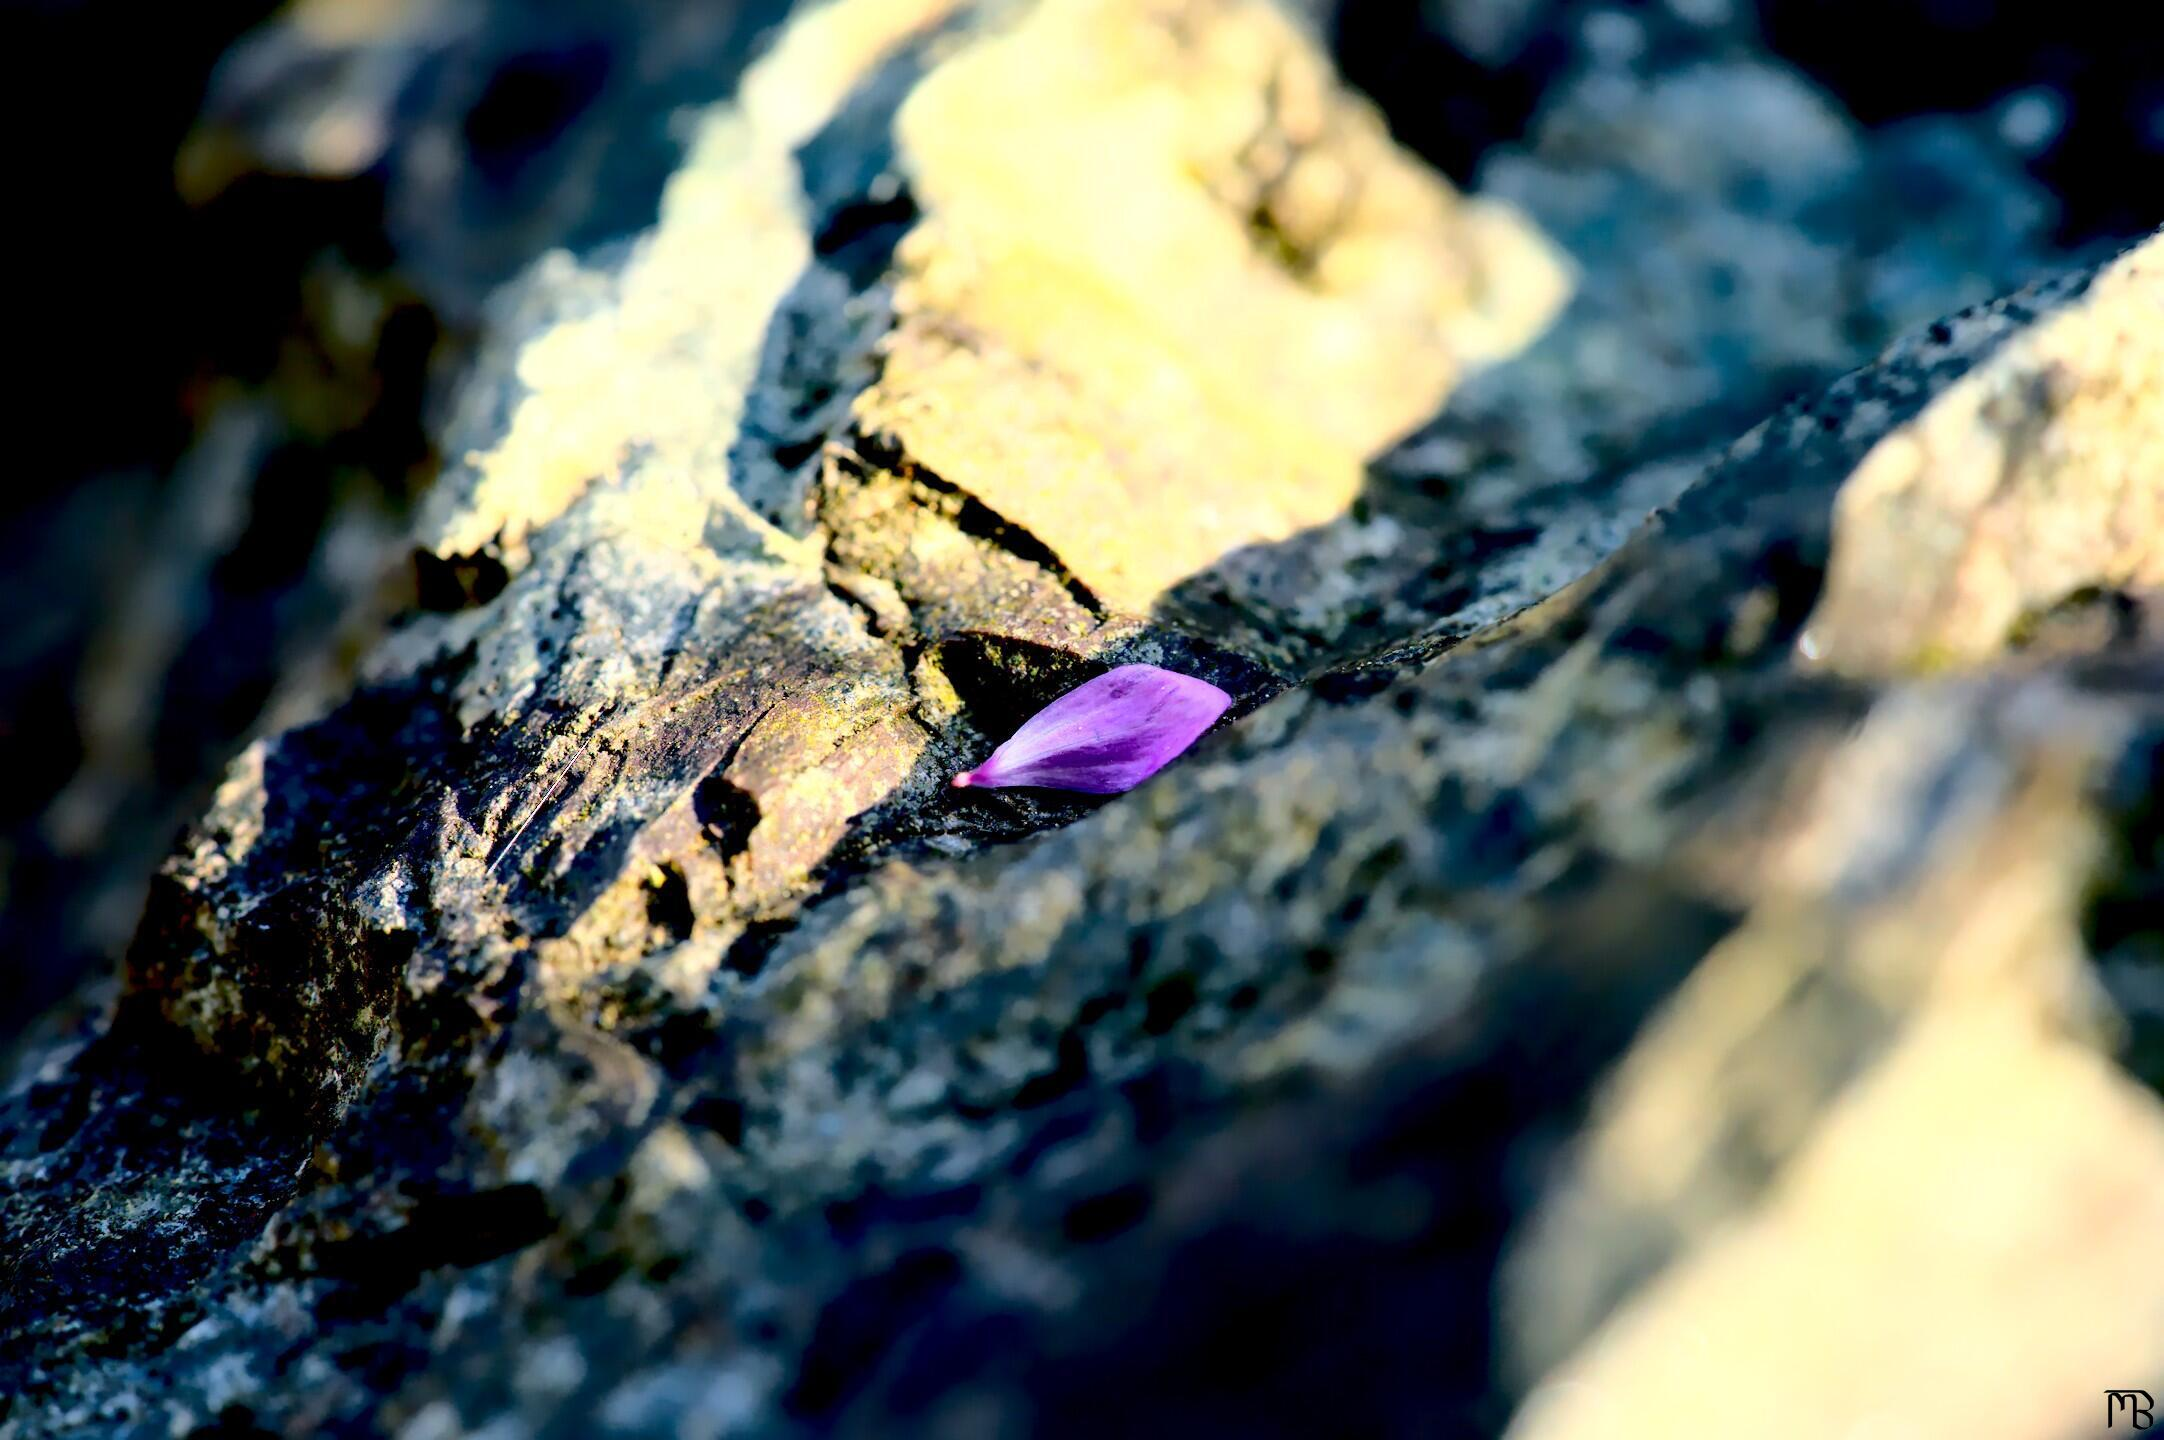 Arty pink petal on rock